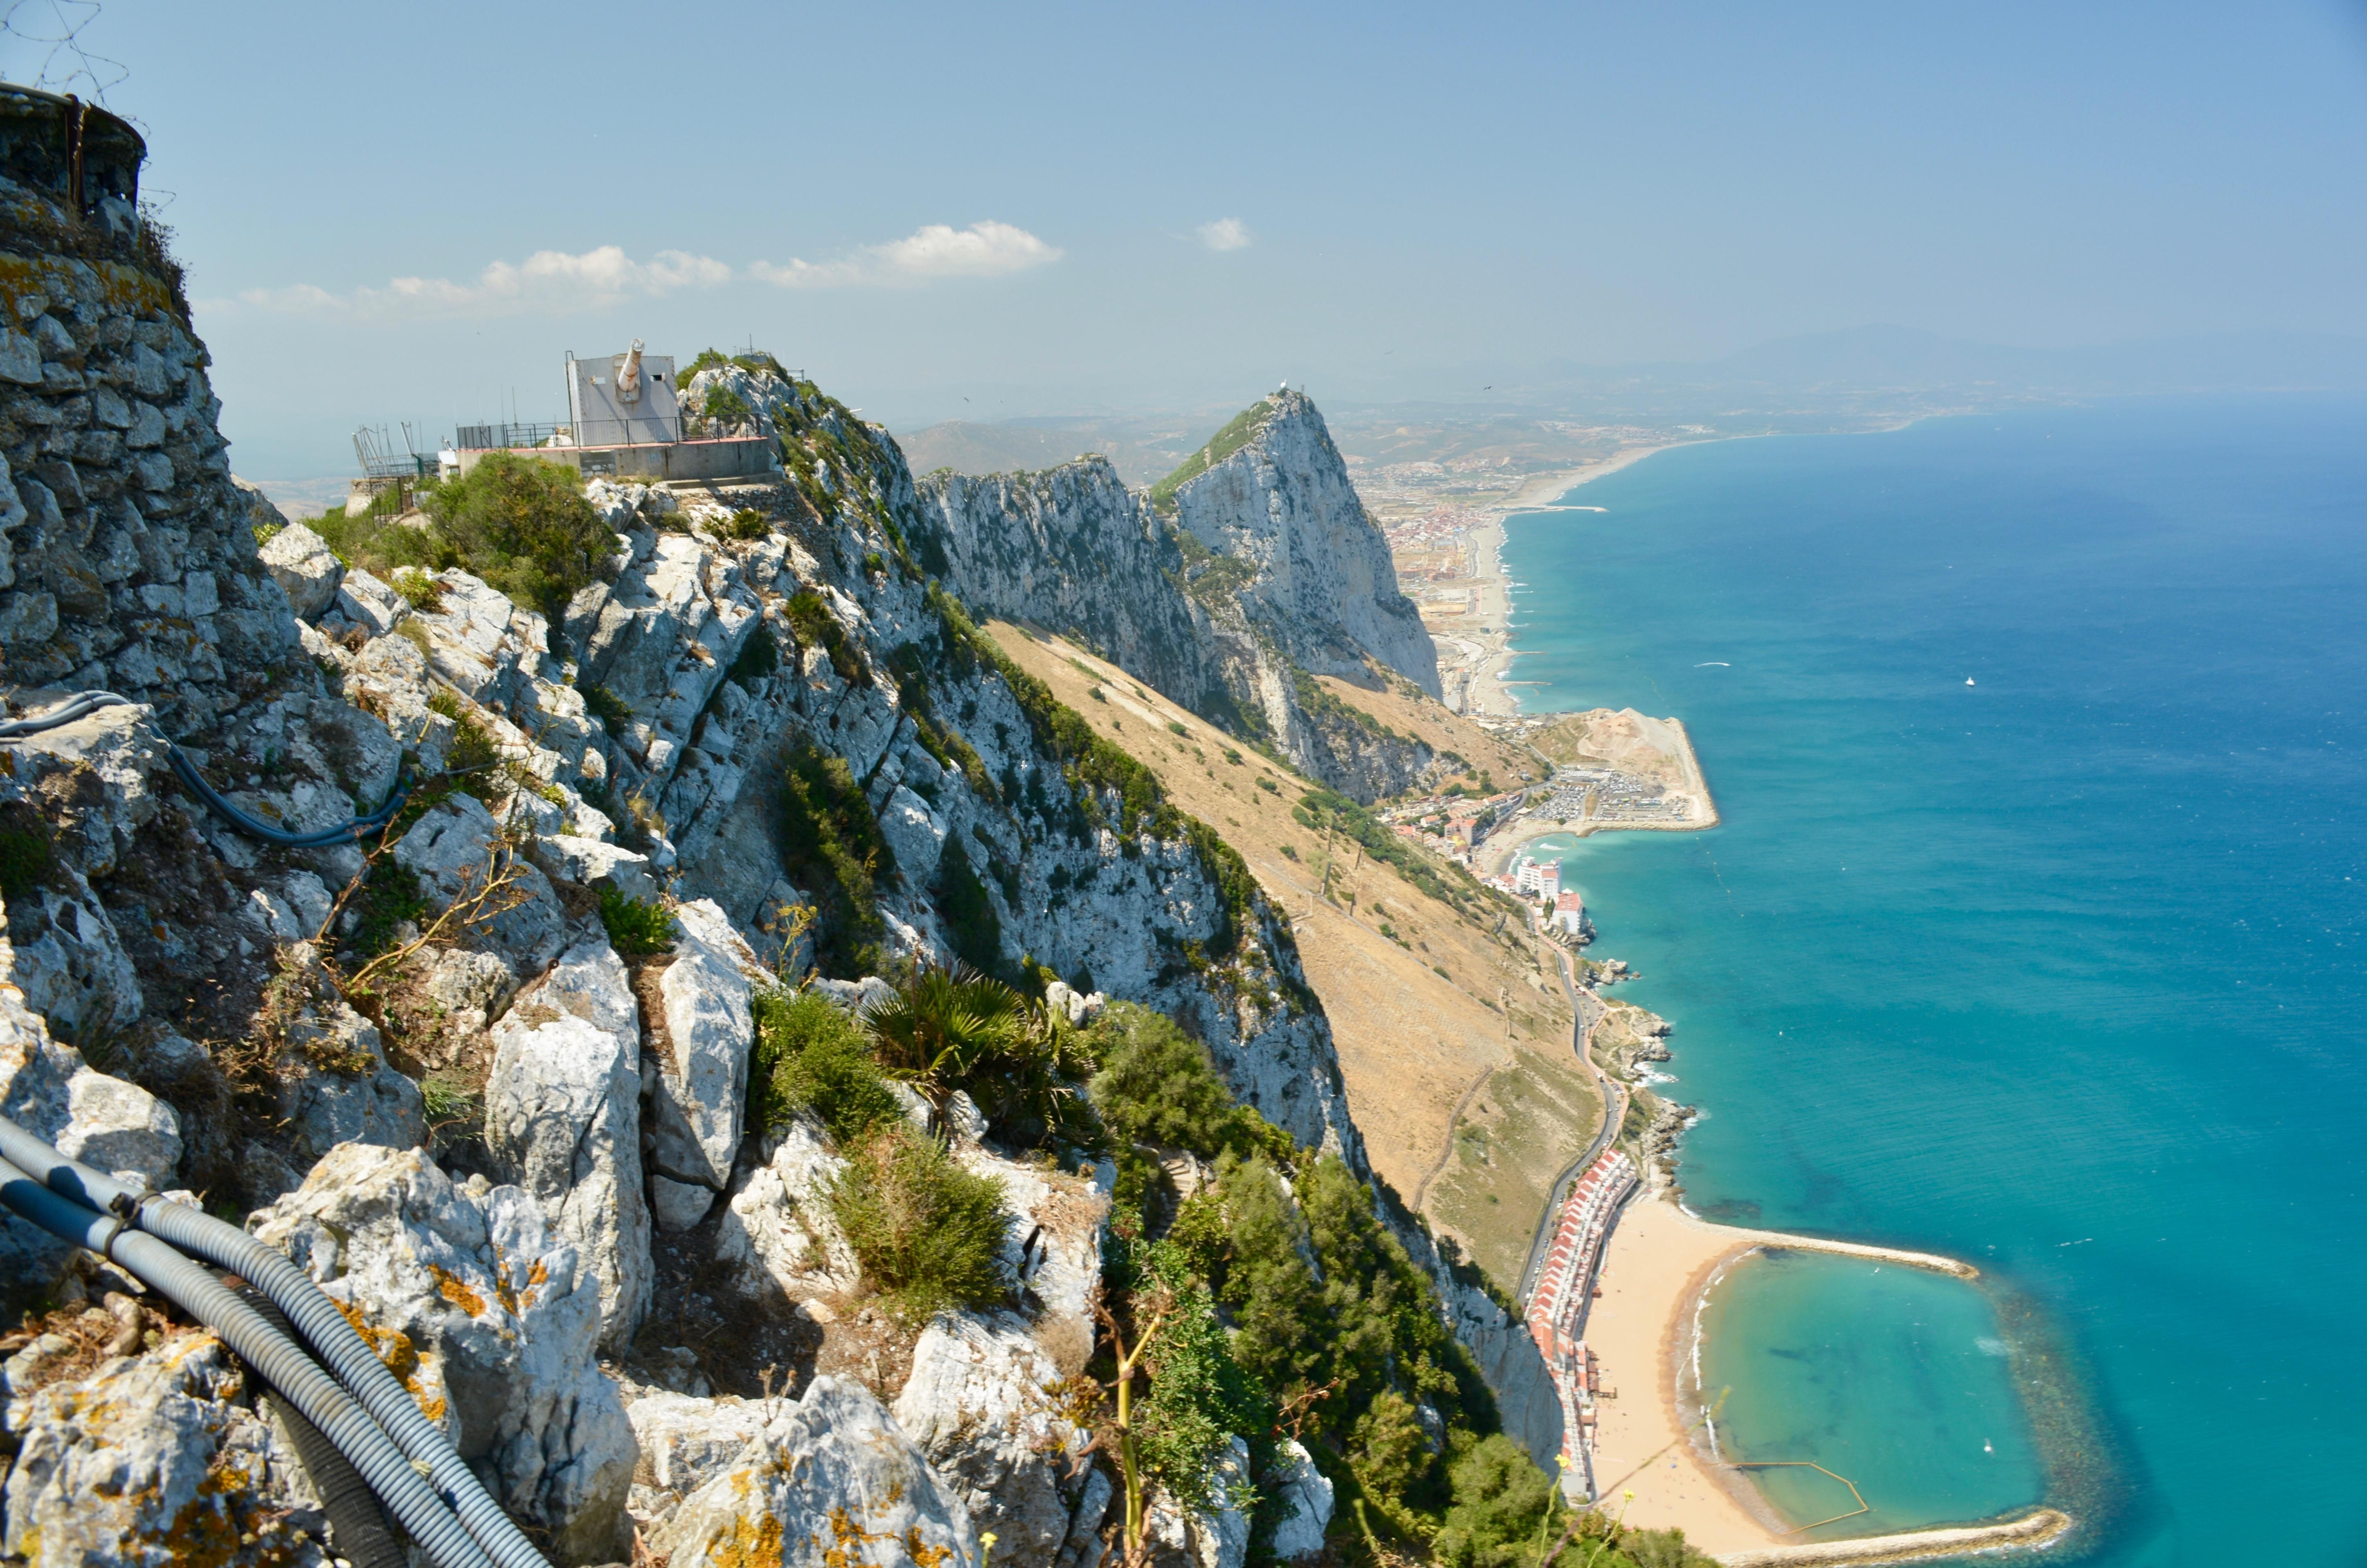 Gibraltar Amp Spanish Mediterranean Coast From O Hara S Battery Looking North Click On The Photo To Discov Mediterranean Travel Mediterranean Coast Travel